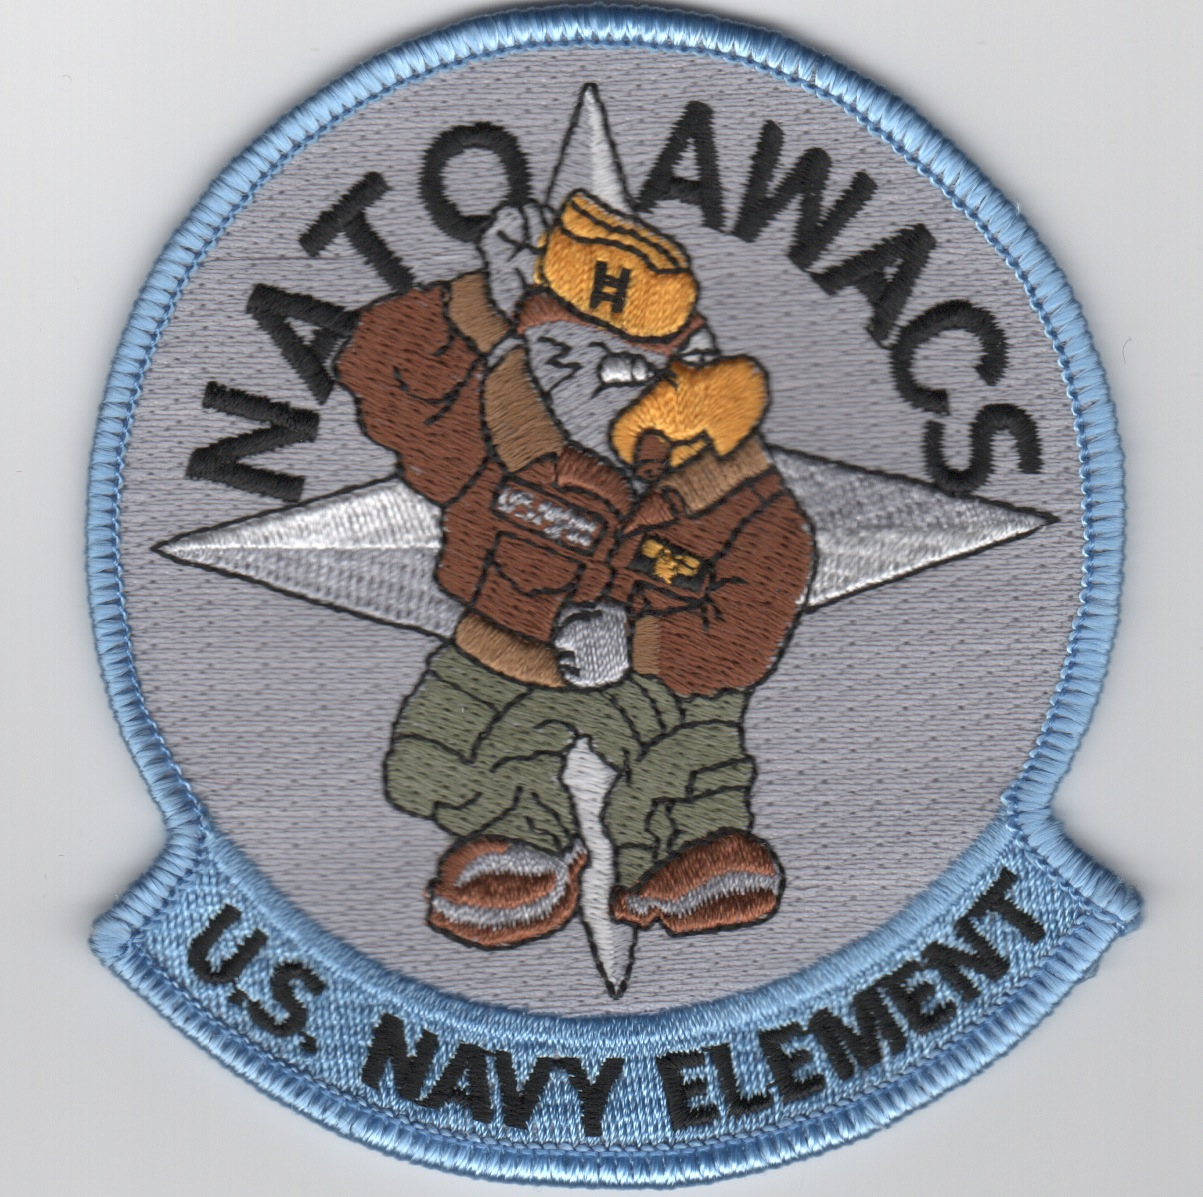 NATO AWACS - USN Element